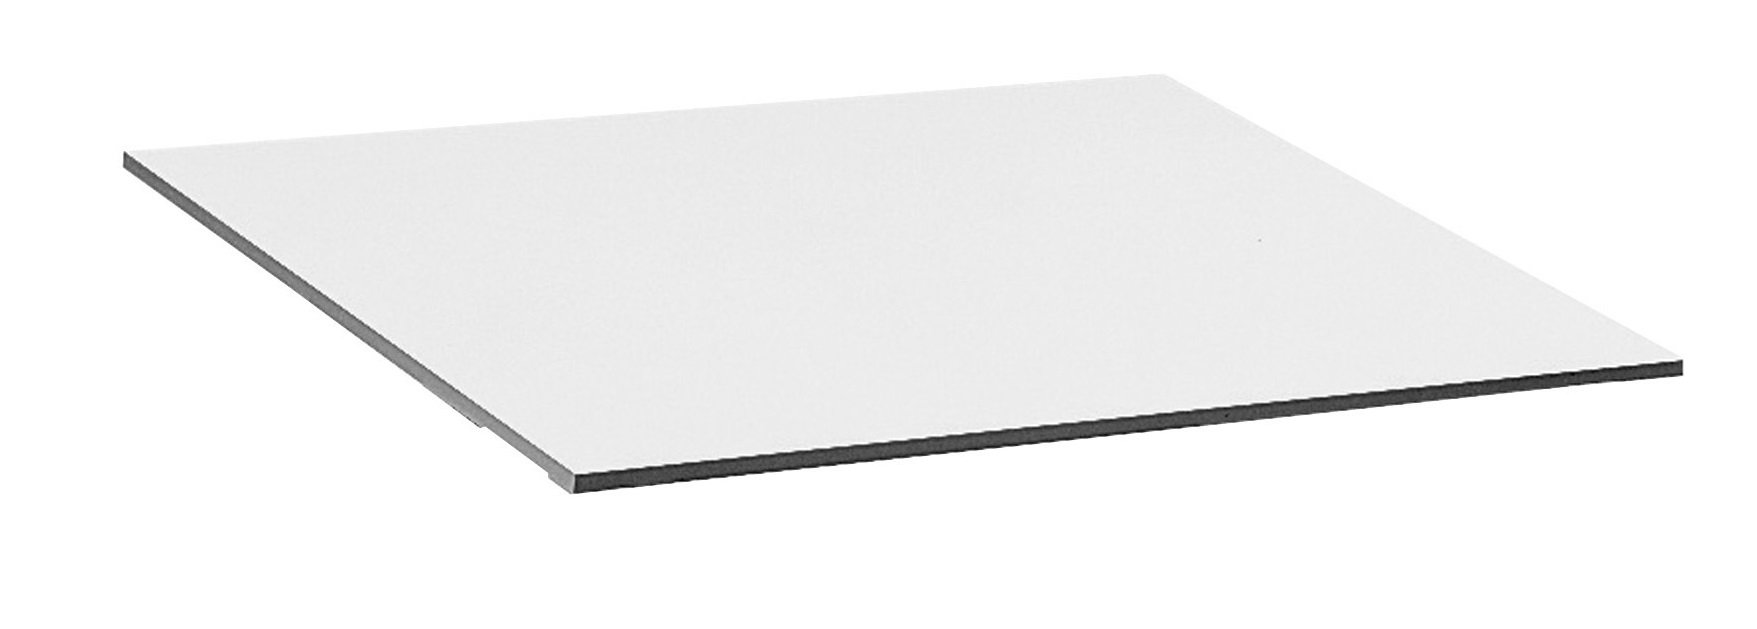 Safco Products Drafting and Drawing Table Top, 48'' x 36'' for Table Base 3957, 3960 or 3961, sold separately, White by Safco Products